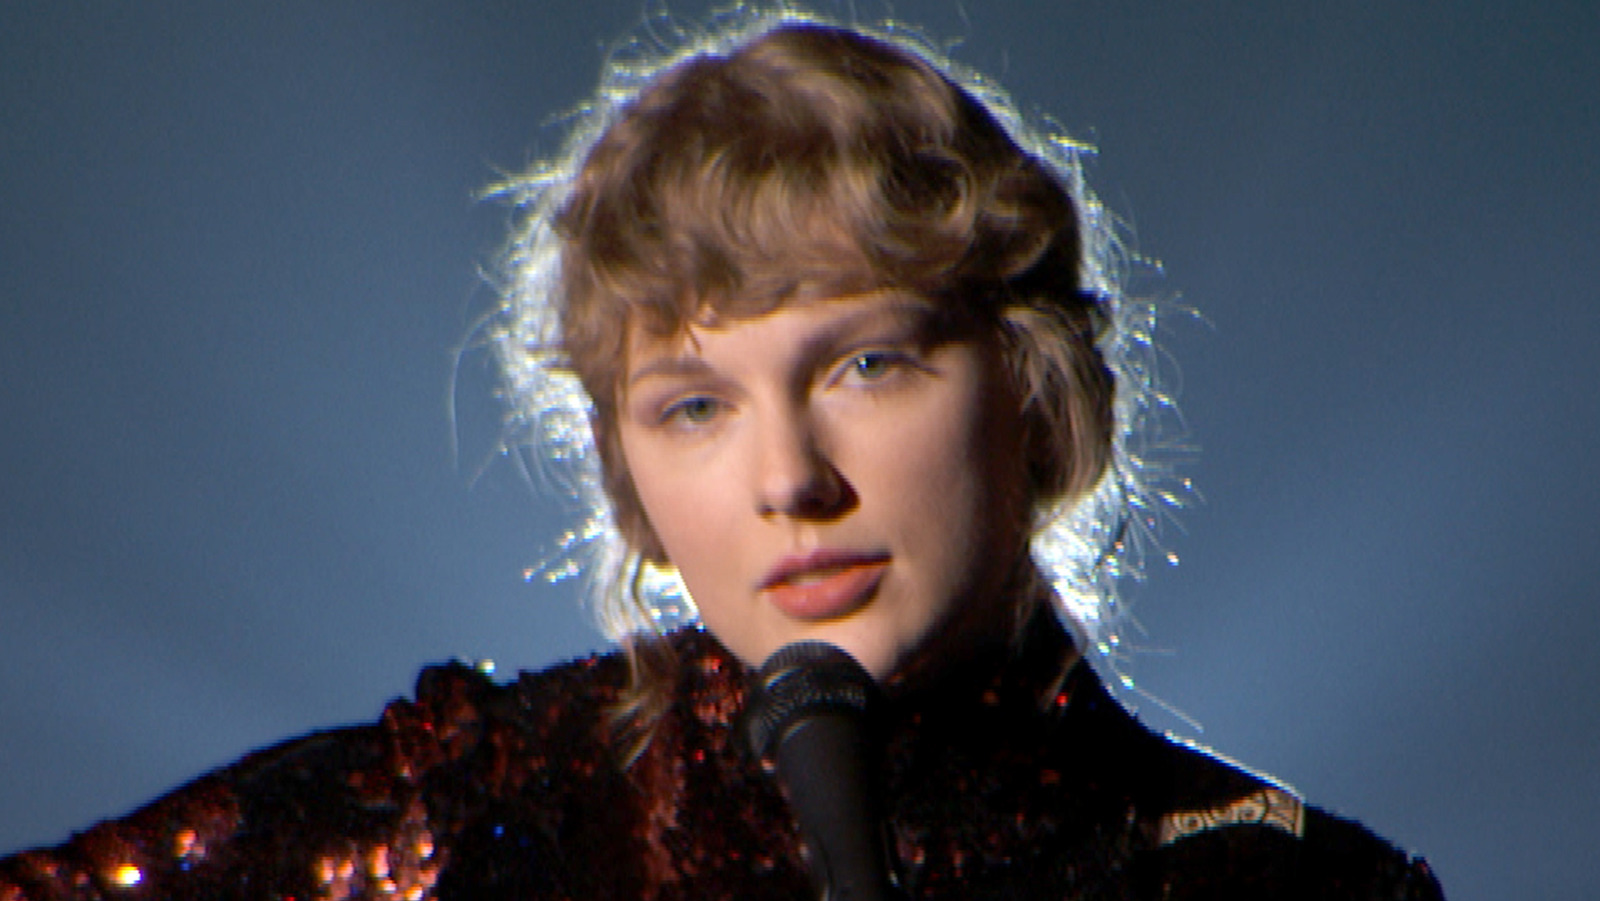 The real meaning behind Taylor Swift's Willow lyrics